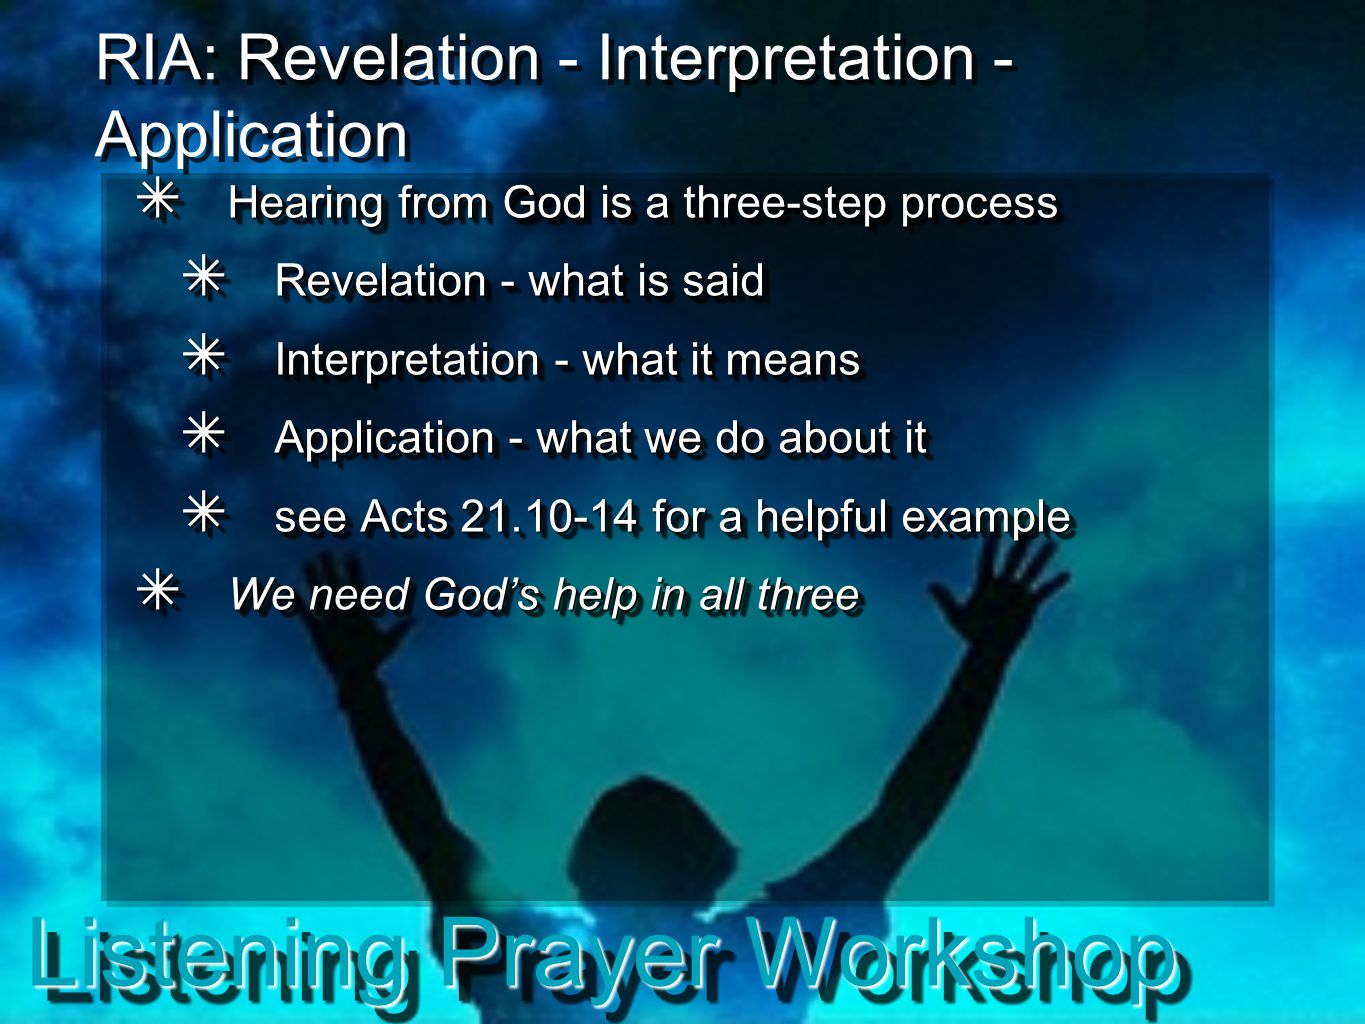 Listening Prayer Workshop RIA: Revelation - Interpretation - Application ✴ Hearing from God is a three-step process ✴ Revelation - what is said ✴ Inte